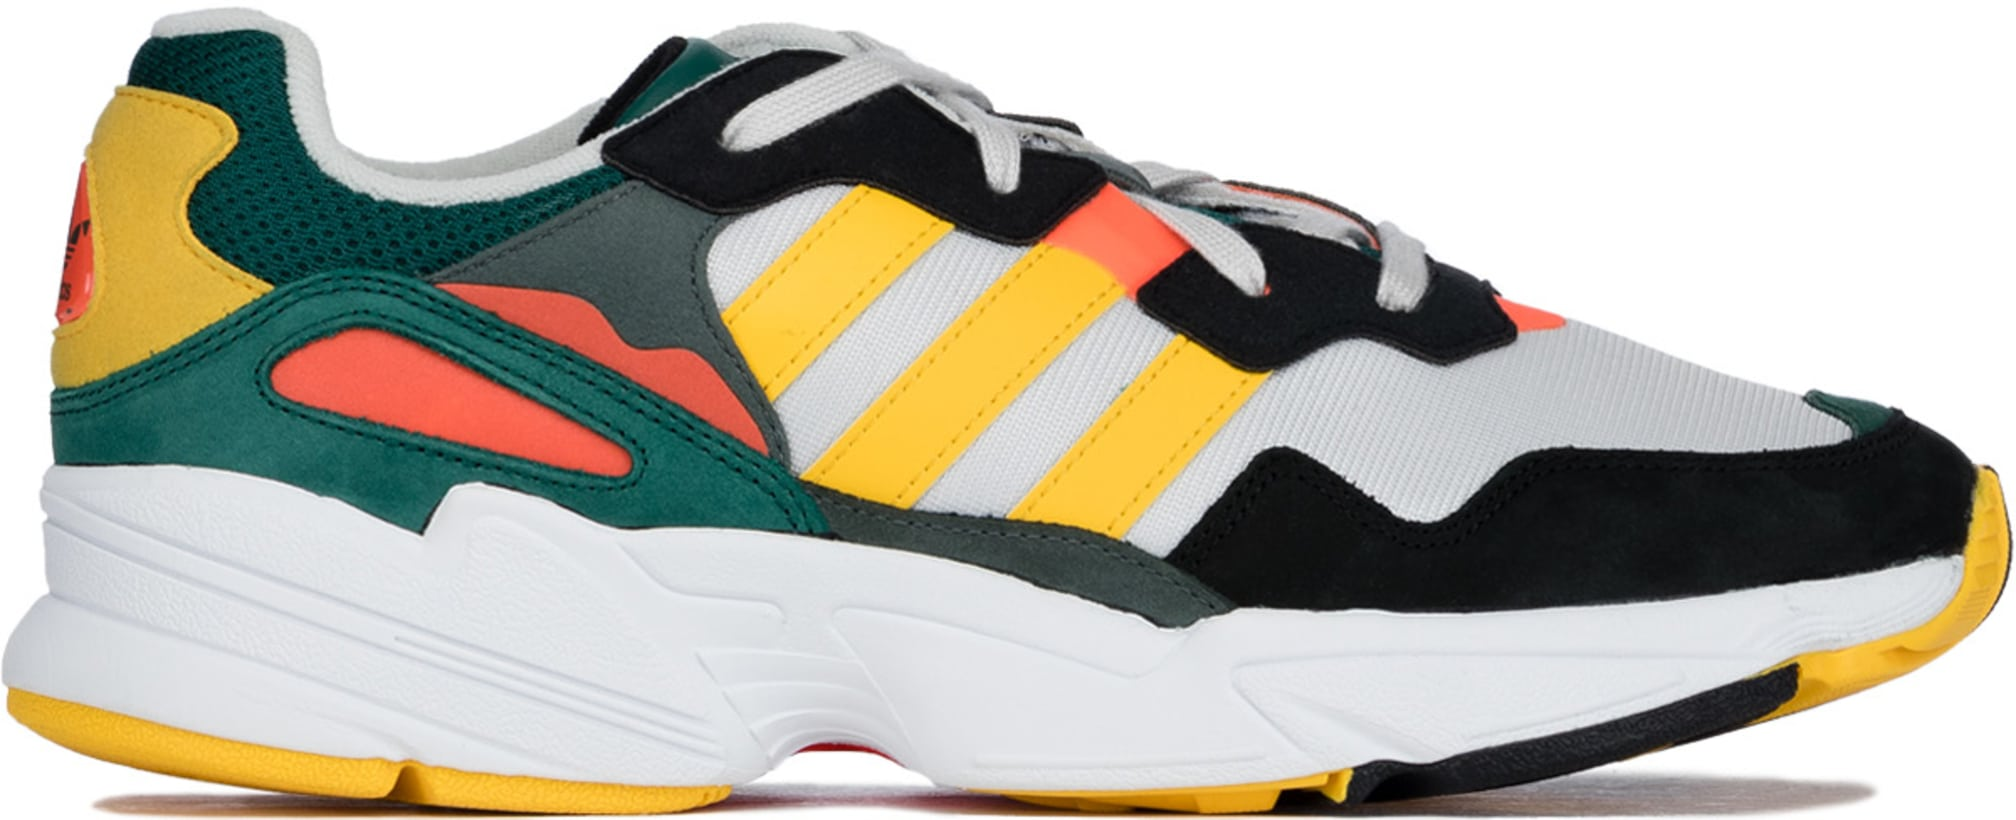 the best attitude 79b96 1d78f adidas Originals. Yung-96 - Grey OneBold GoldSolar Red